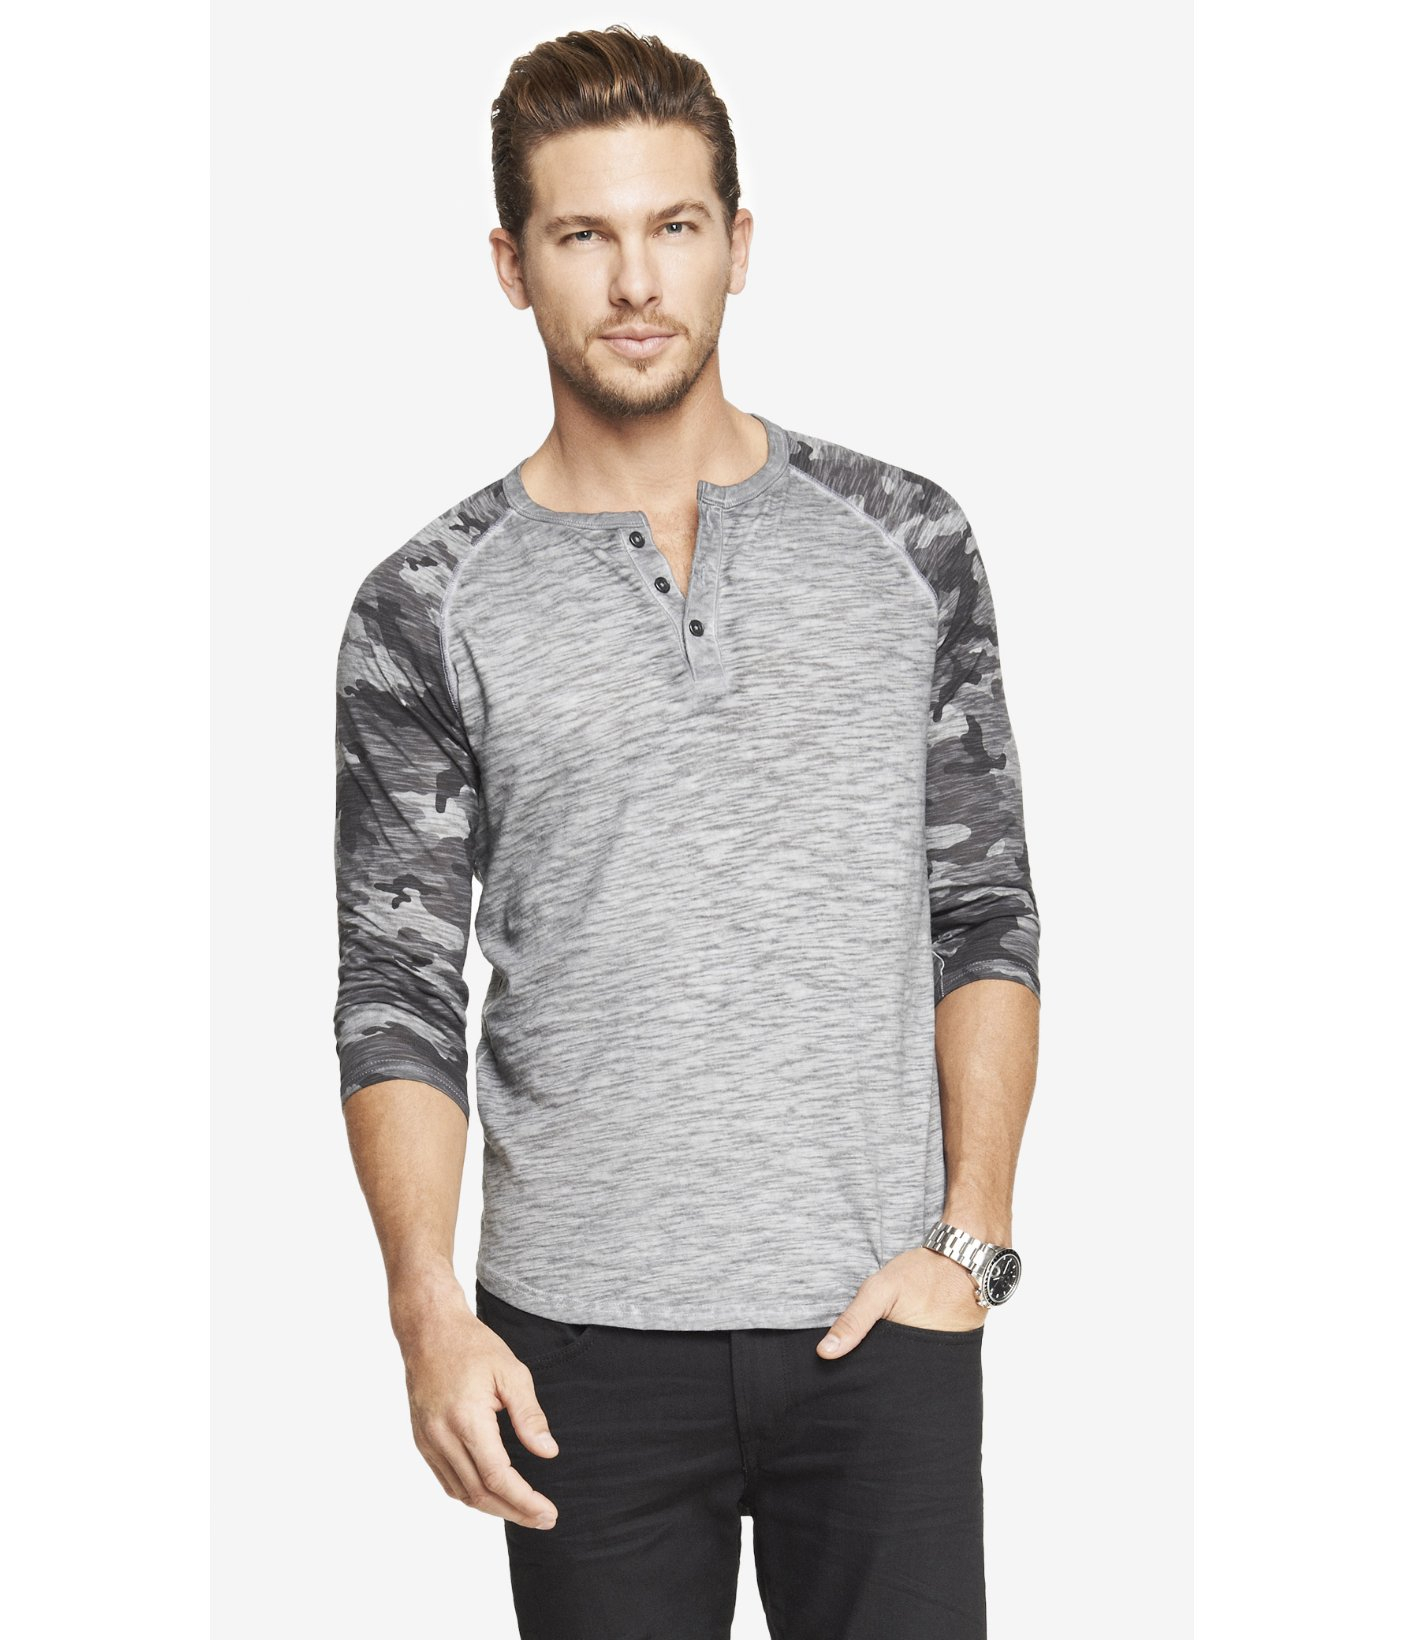 Like a henley and a baseball raglan had a baby Signature Tri-Blend fabric Brand-new silhouette Like a henley and a baseball raglan had a baby Signature Tri-Blend fabric Brand-new silhouette IT'S .